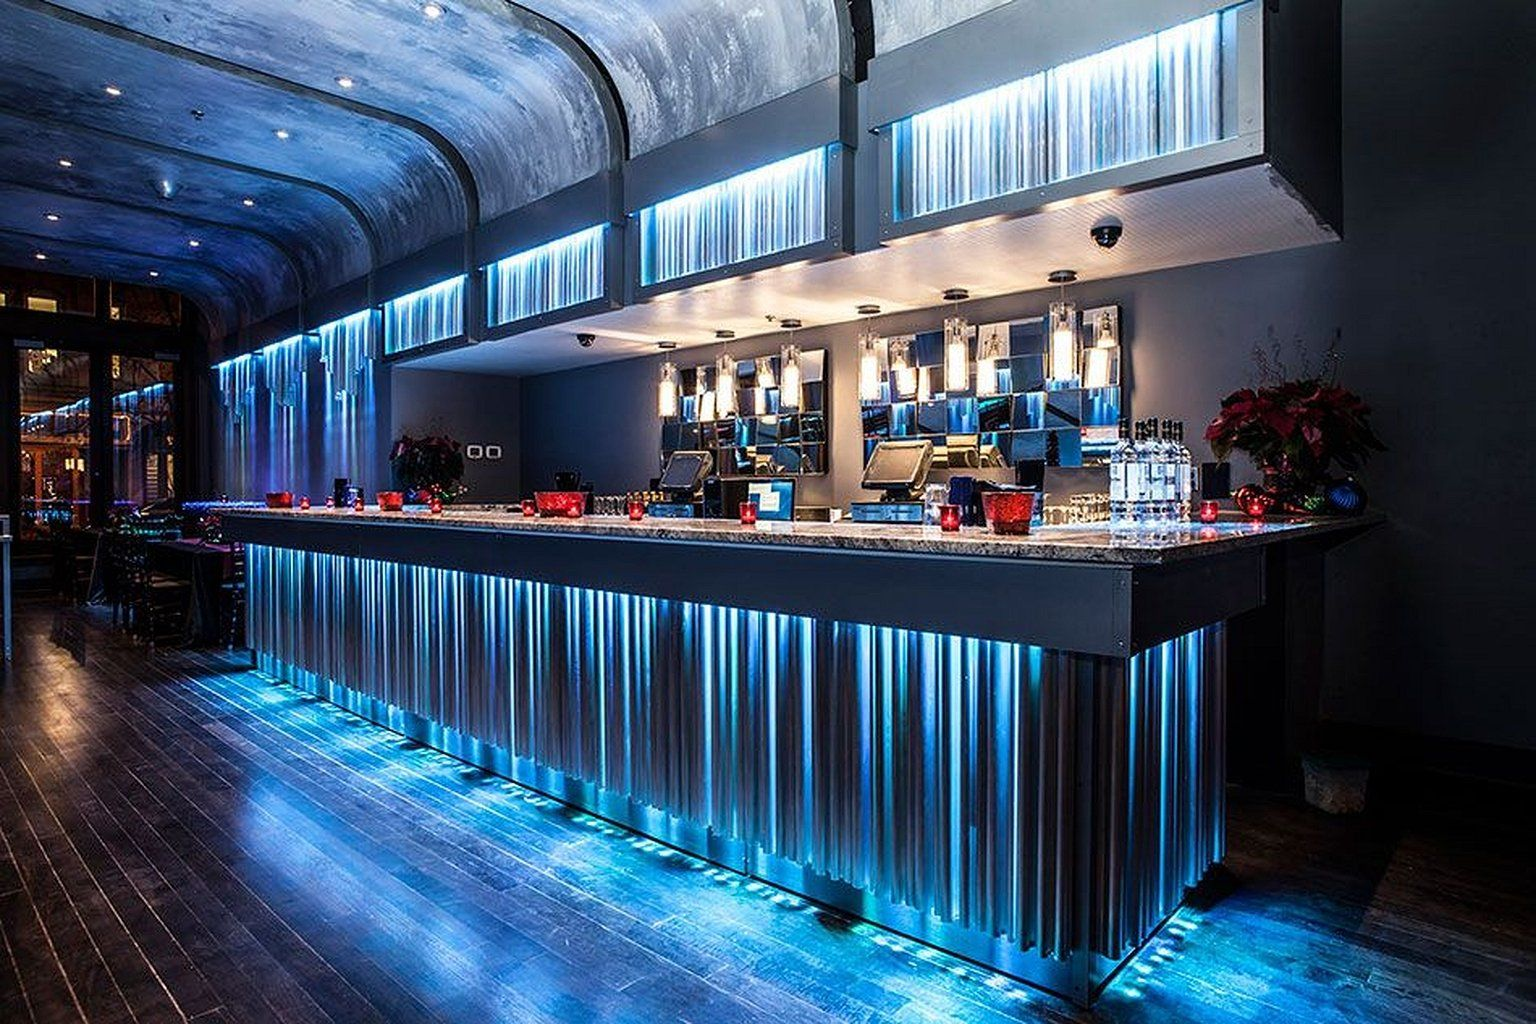 Pin By Davonte Kyles On Playsure In 2020 Bar Design Restaurant Bar Lounge Design Bar Counter Design